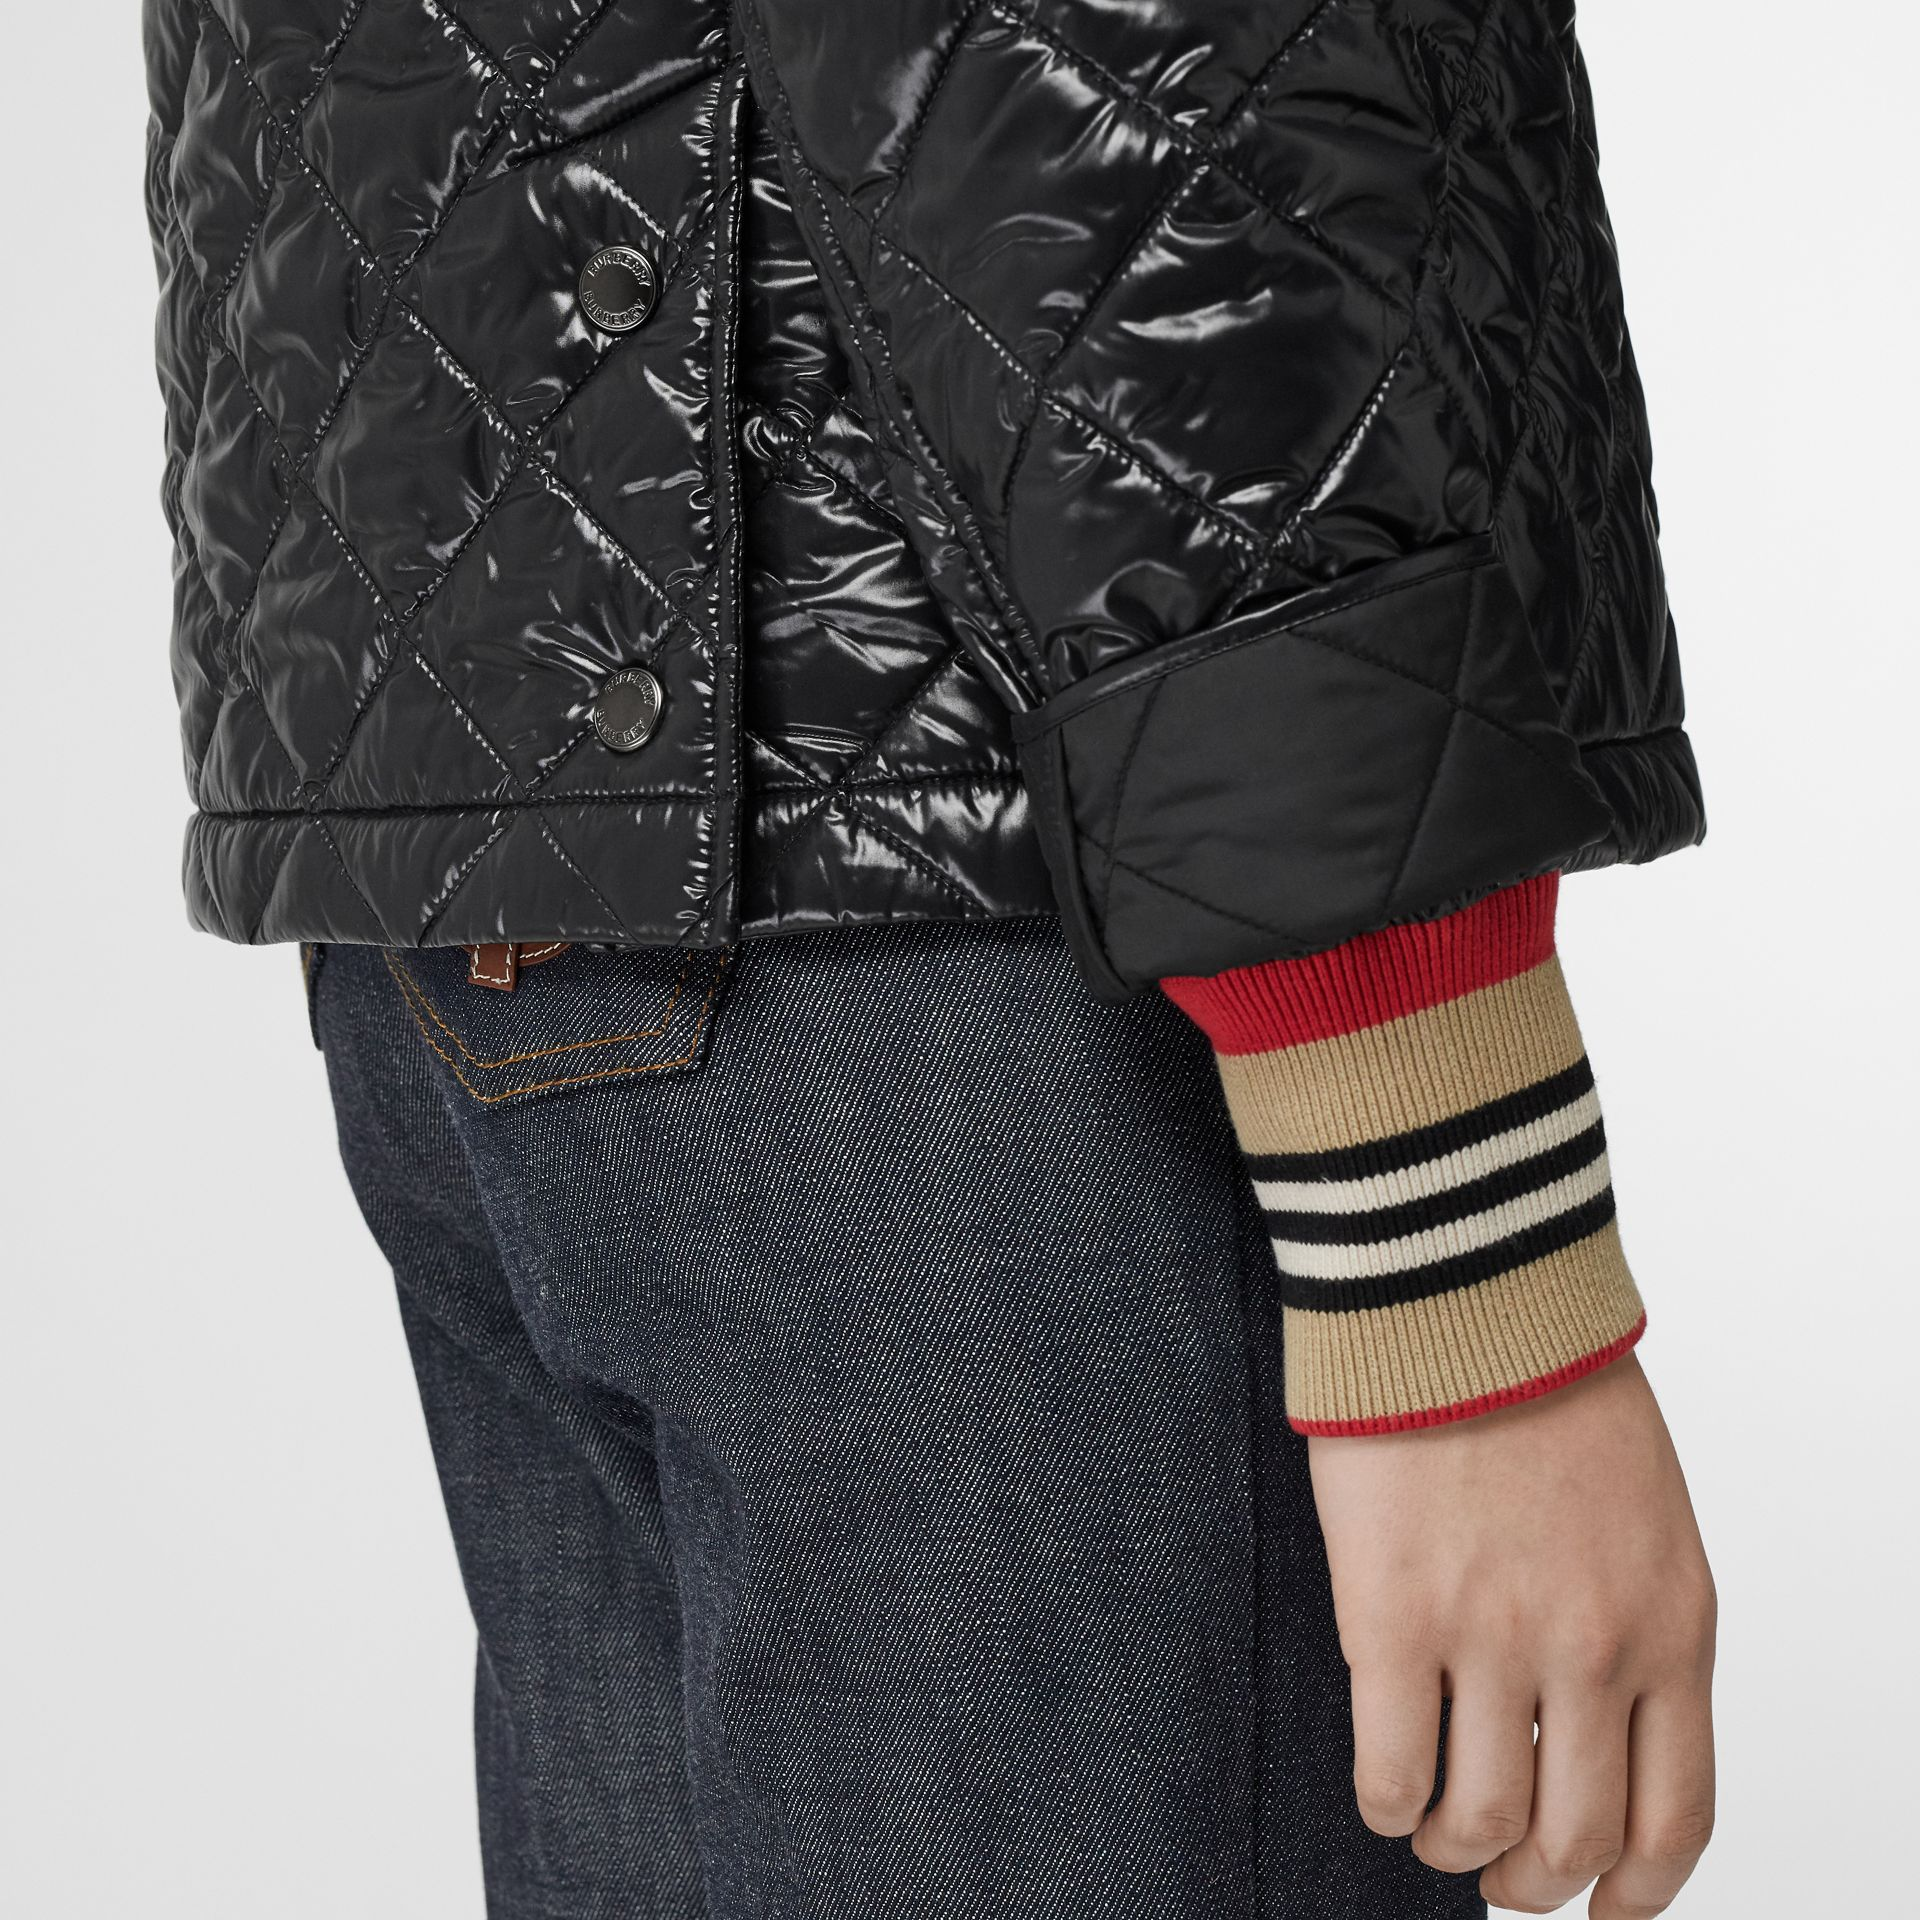 Monogram Motif Diamond Quilted Jacket in Black - Women | Burberry United Kingdom - gallery image 4